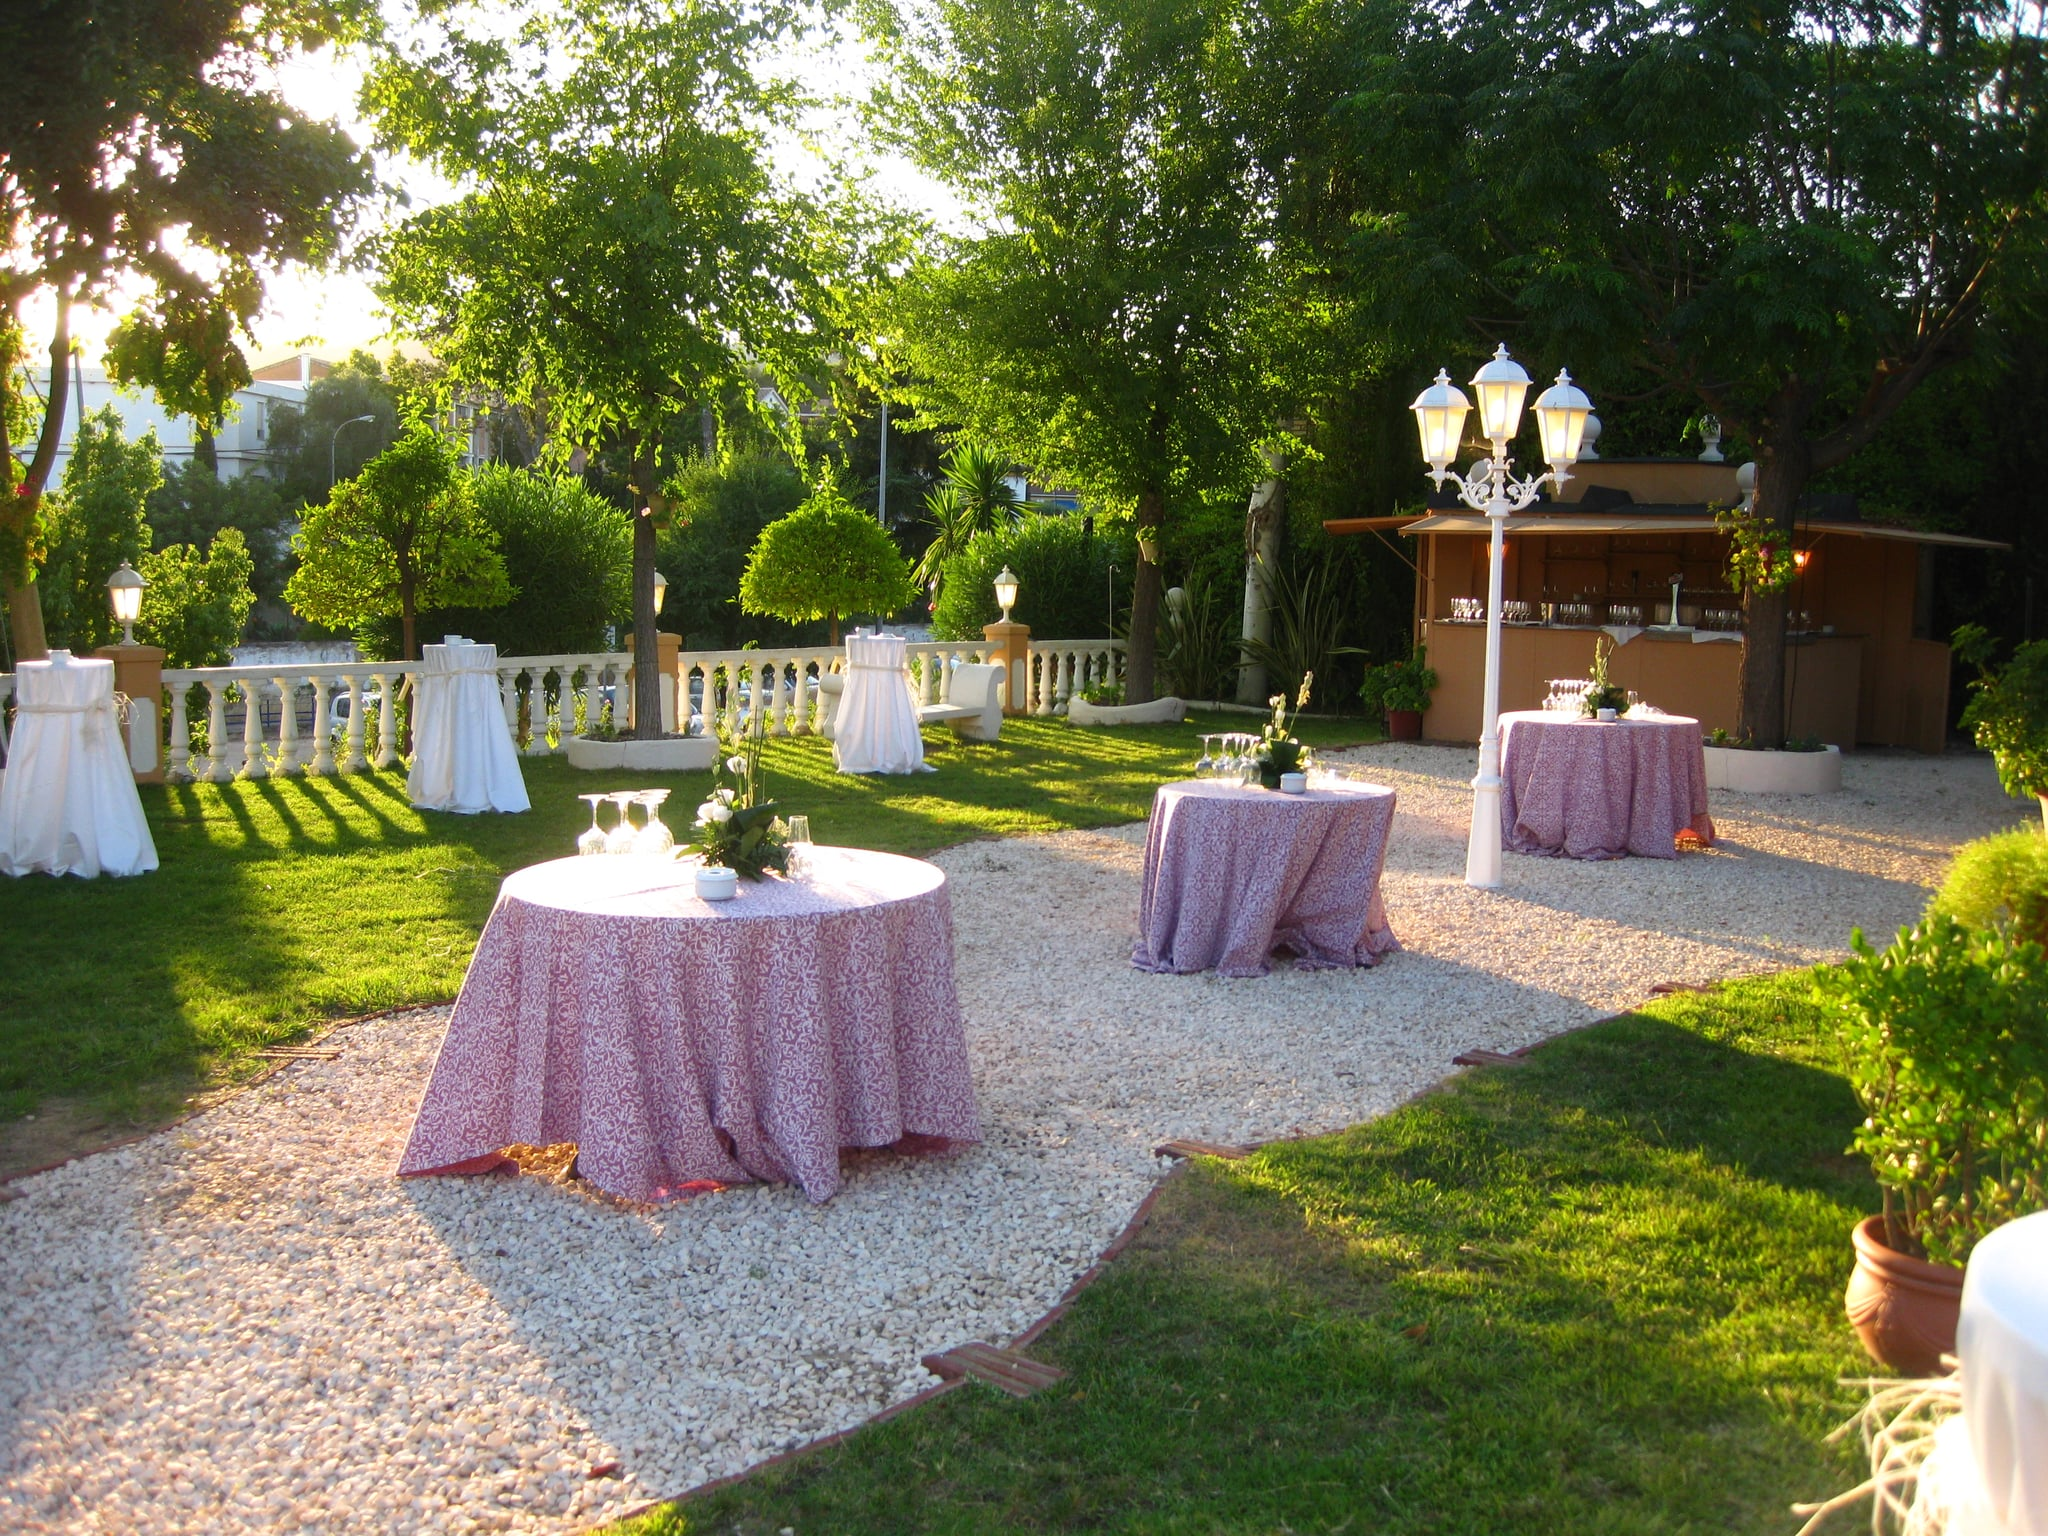 This is the area where they held the cocktail hour. It was on grass which proved to be difficult for the girls (like myself) in high heels.